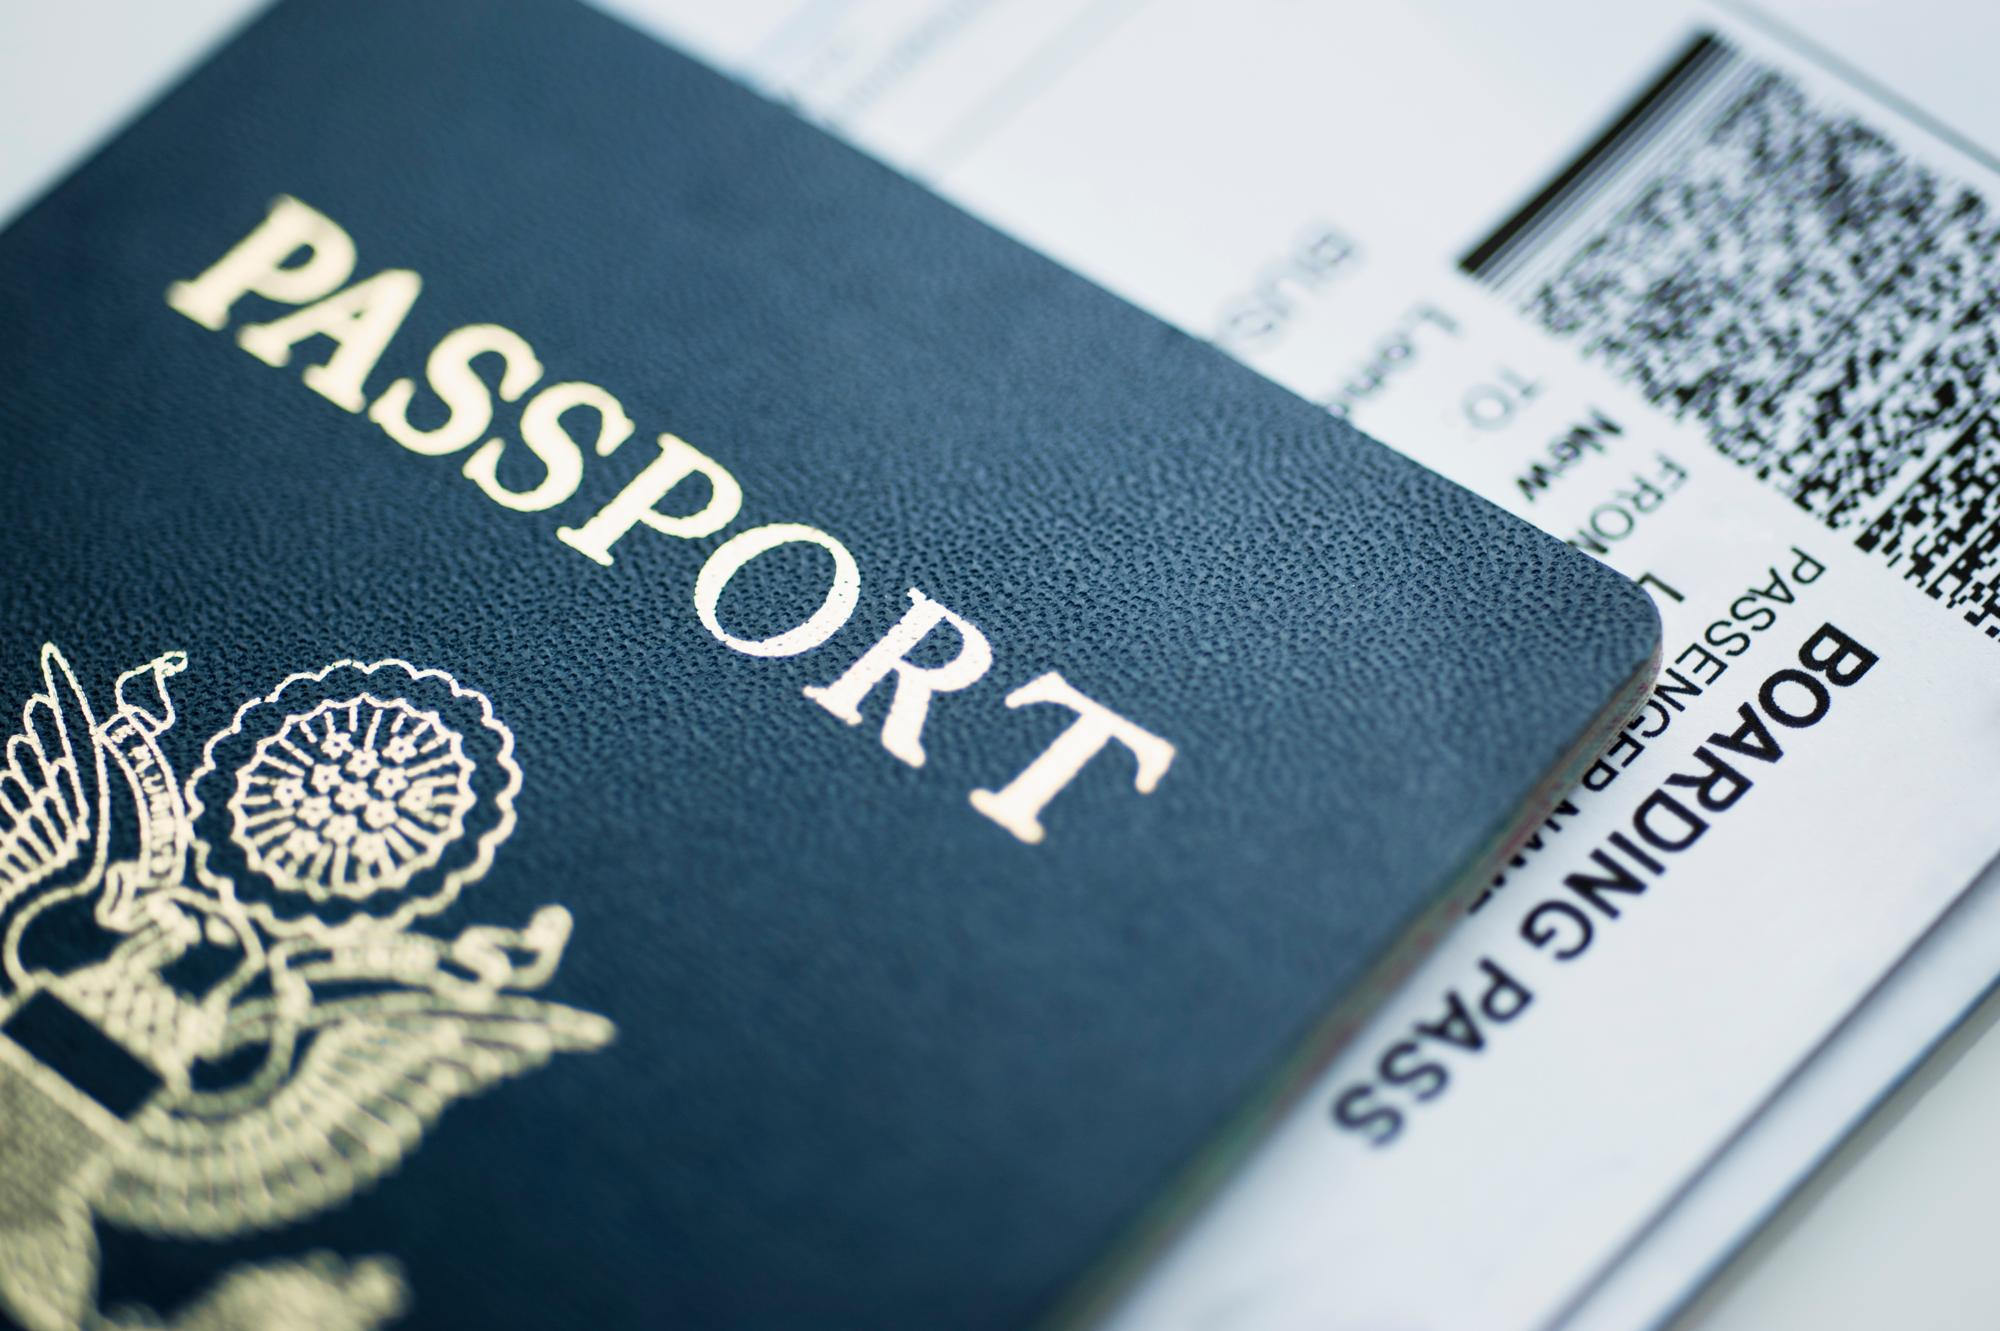 American passport with boarding passes